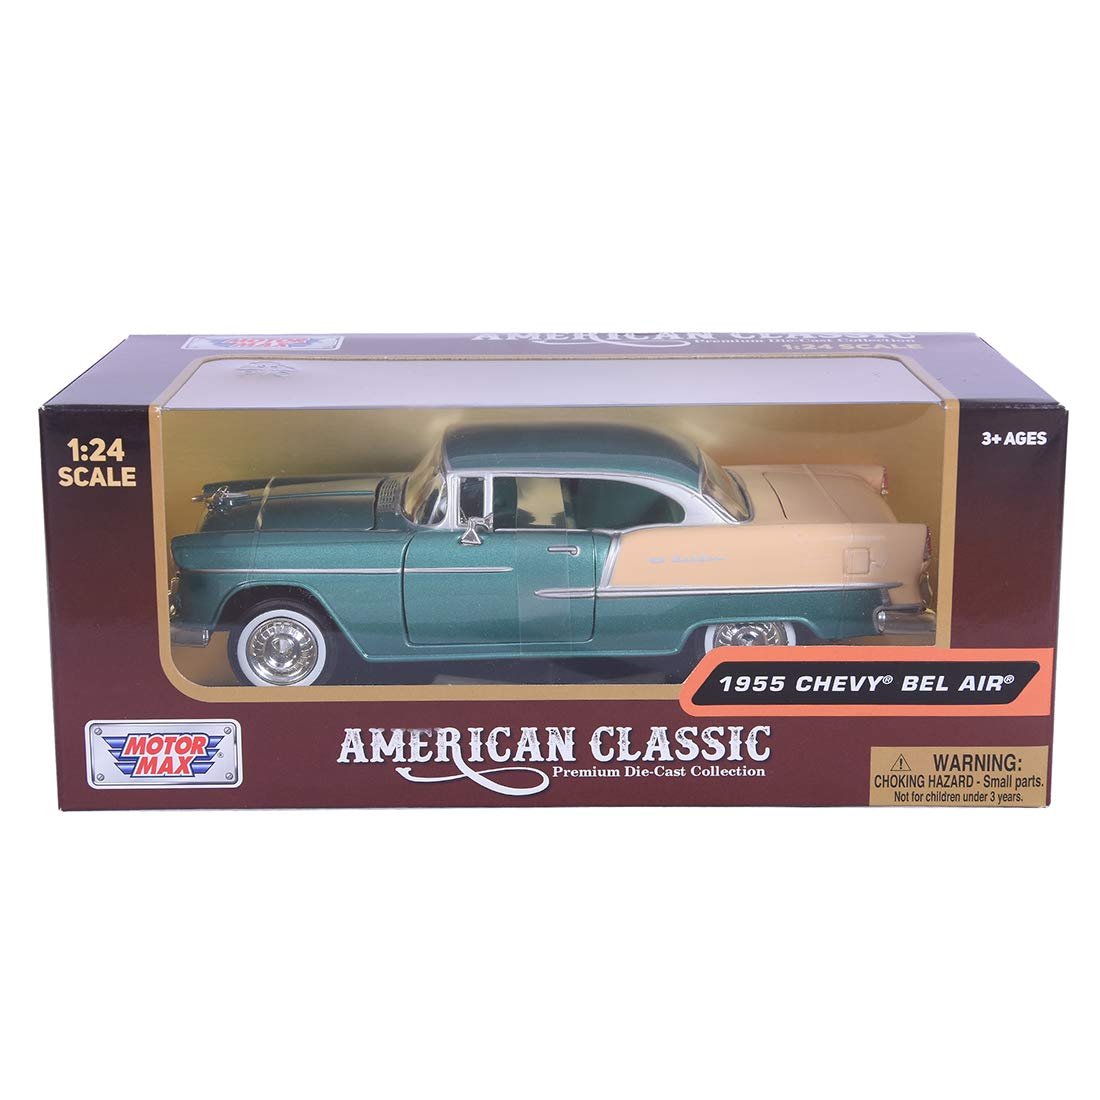 Motormax 124 1955 Chevy Bel Air Toys Games 1966 Chevrolet Rear View